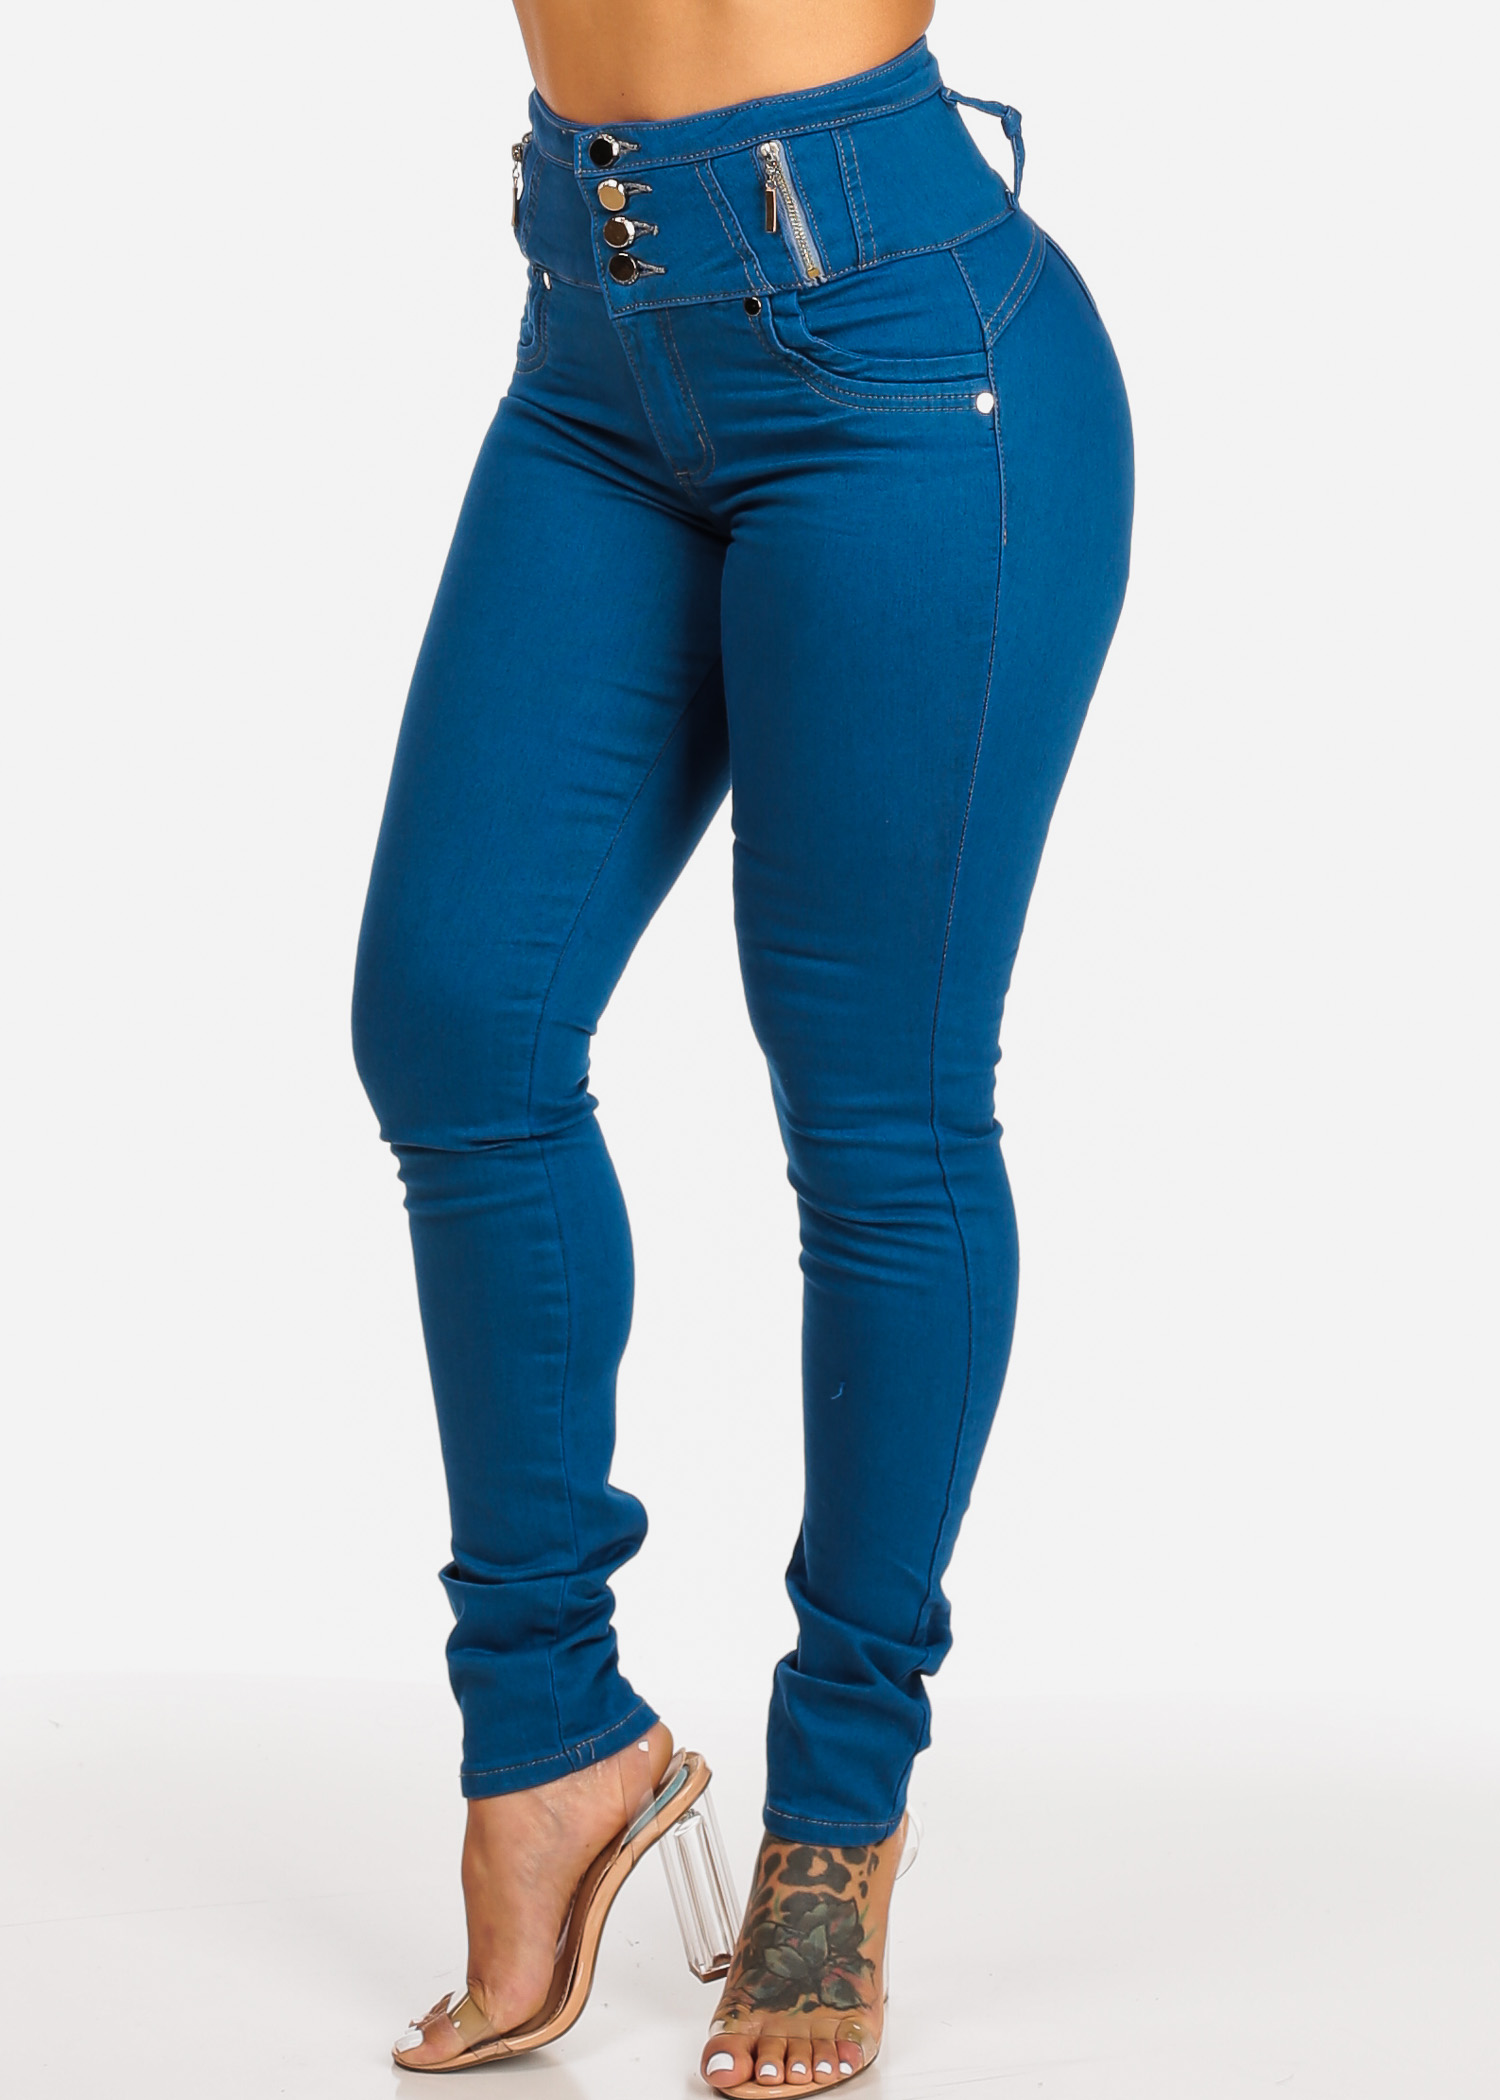 Womens Juniors High Waisted Blue 4 Button Butt Lifting Skinny Jeans  10494L